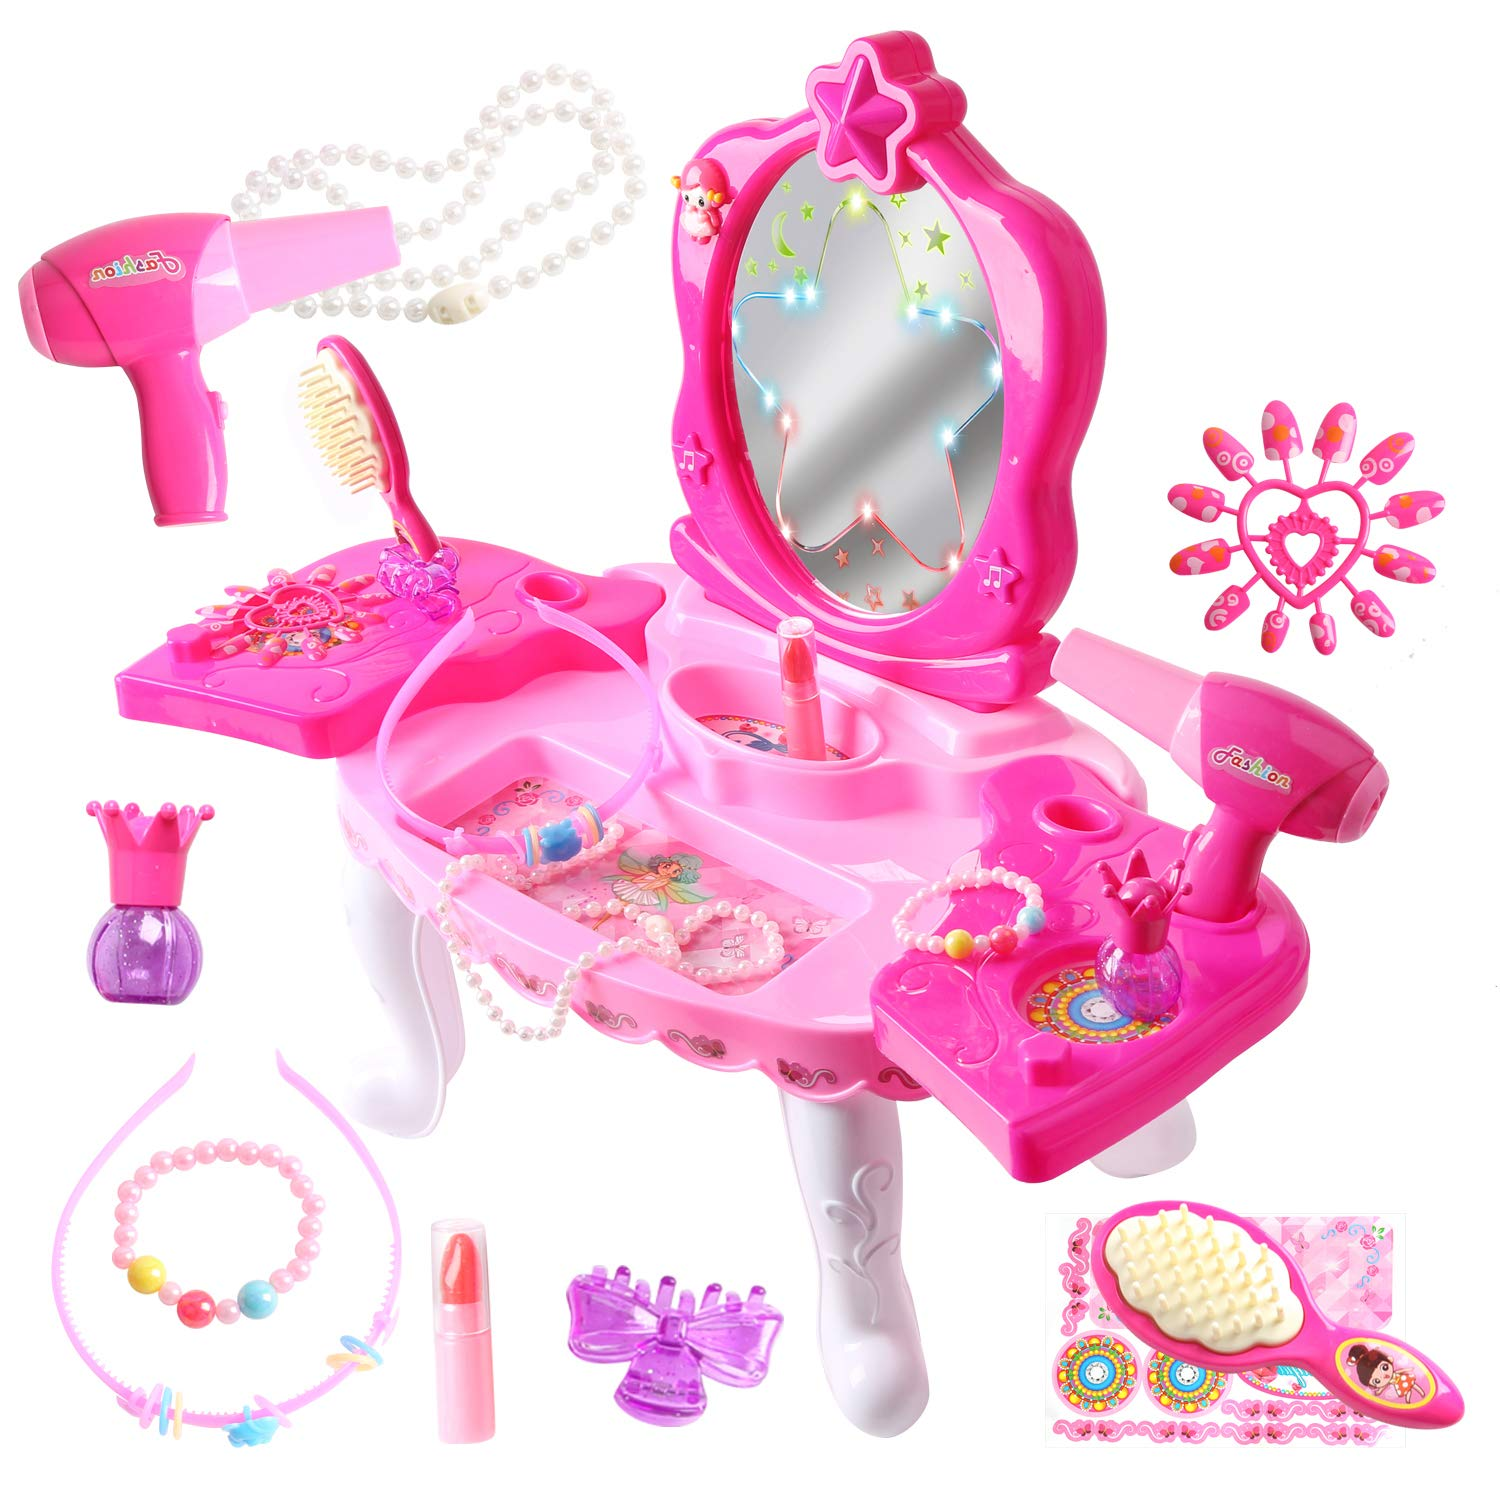 10 Pieces Little Girls Fairy Princess 19.3'' Toy Dresser Table with Light and Music Pretend Play Dress-up Beauty Salon Vanity Playset with Working Hair Dryer(Pink-8001B-1)